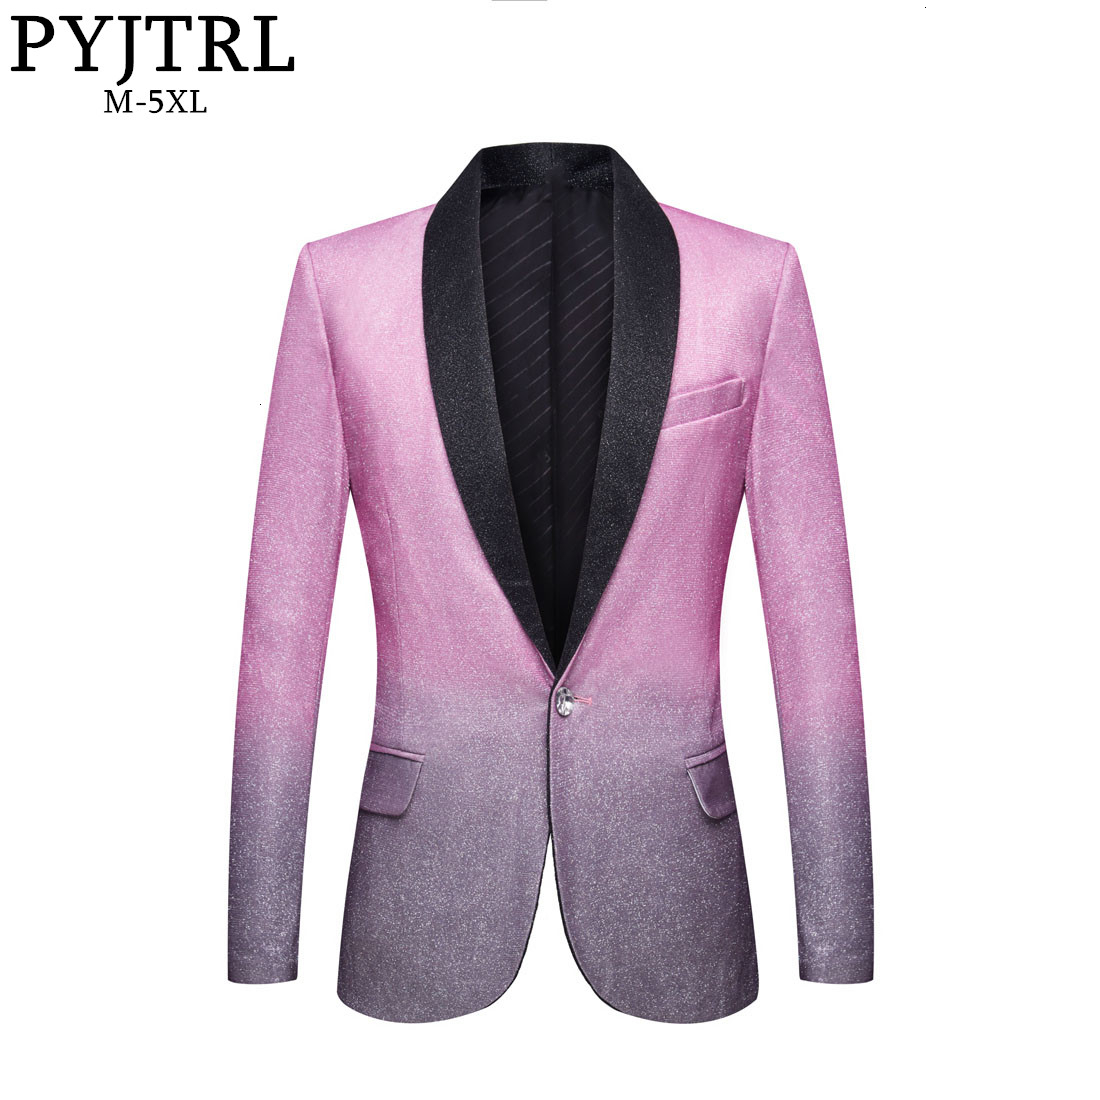 PYJTRL Mens Wedding Groom Stylish Shalw Lapel Gradient Color Shiny Pink Gray Slim Fit Blazer Stage Singer Prom Dress Suit Jacket